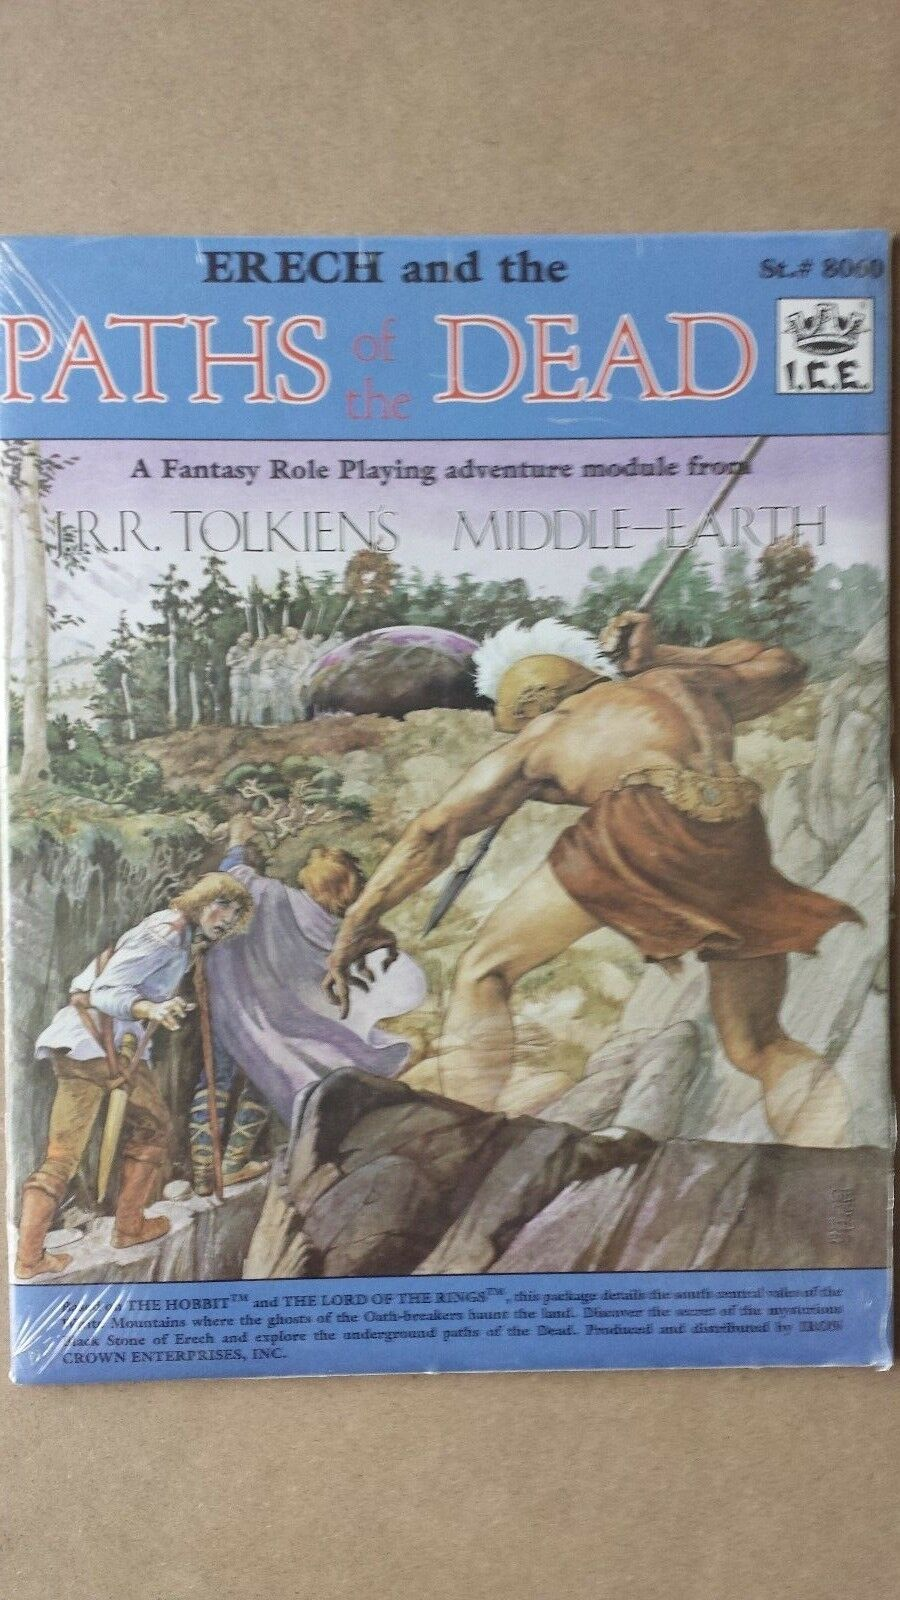 nuovo  MERP Middle Earth Erech e the Paths of the Dead 8060 FACTORY SEALED  fantastica qualità